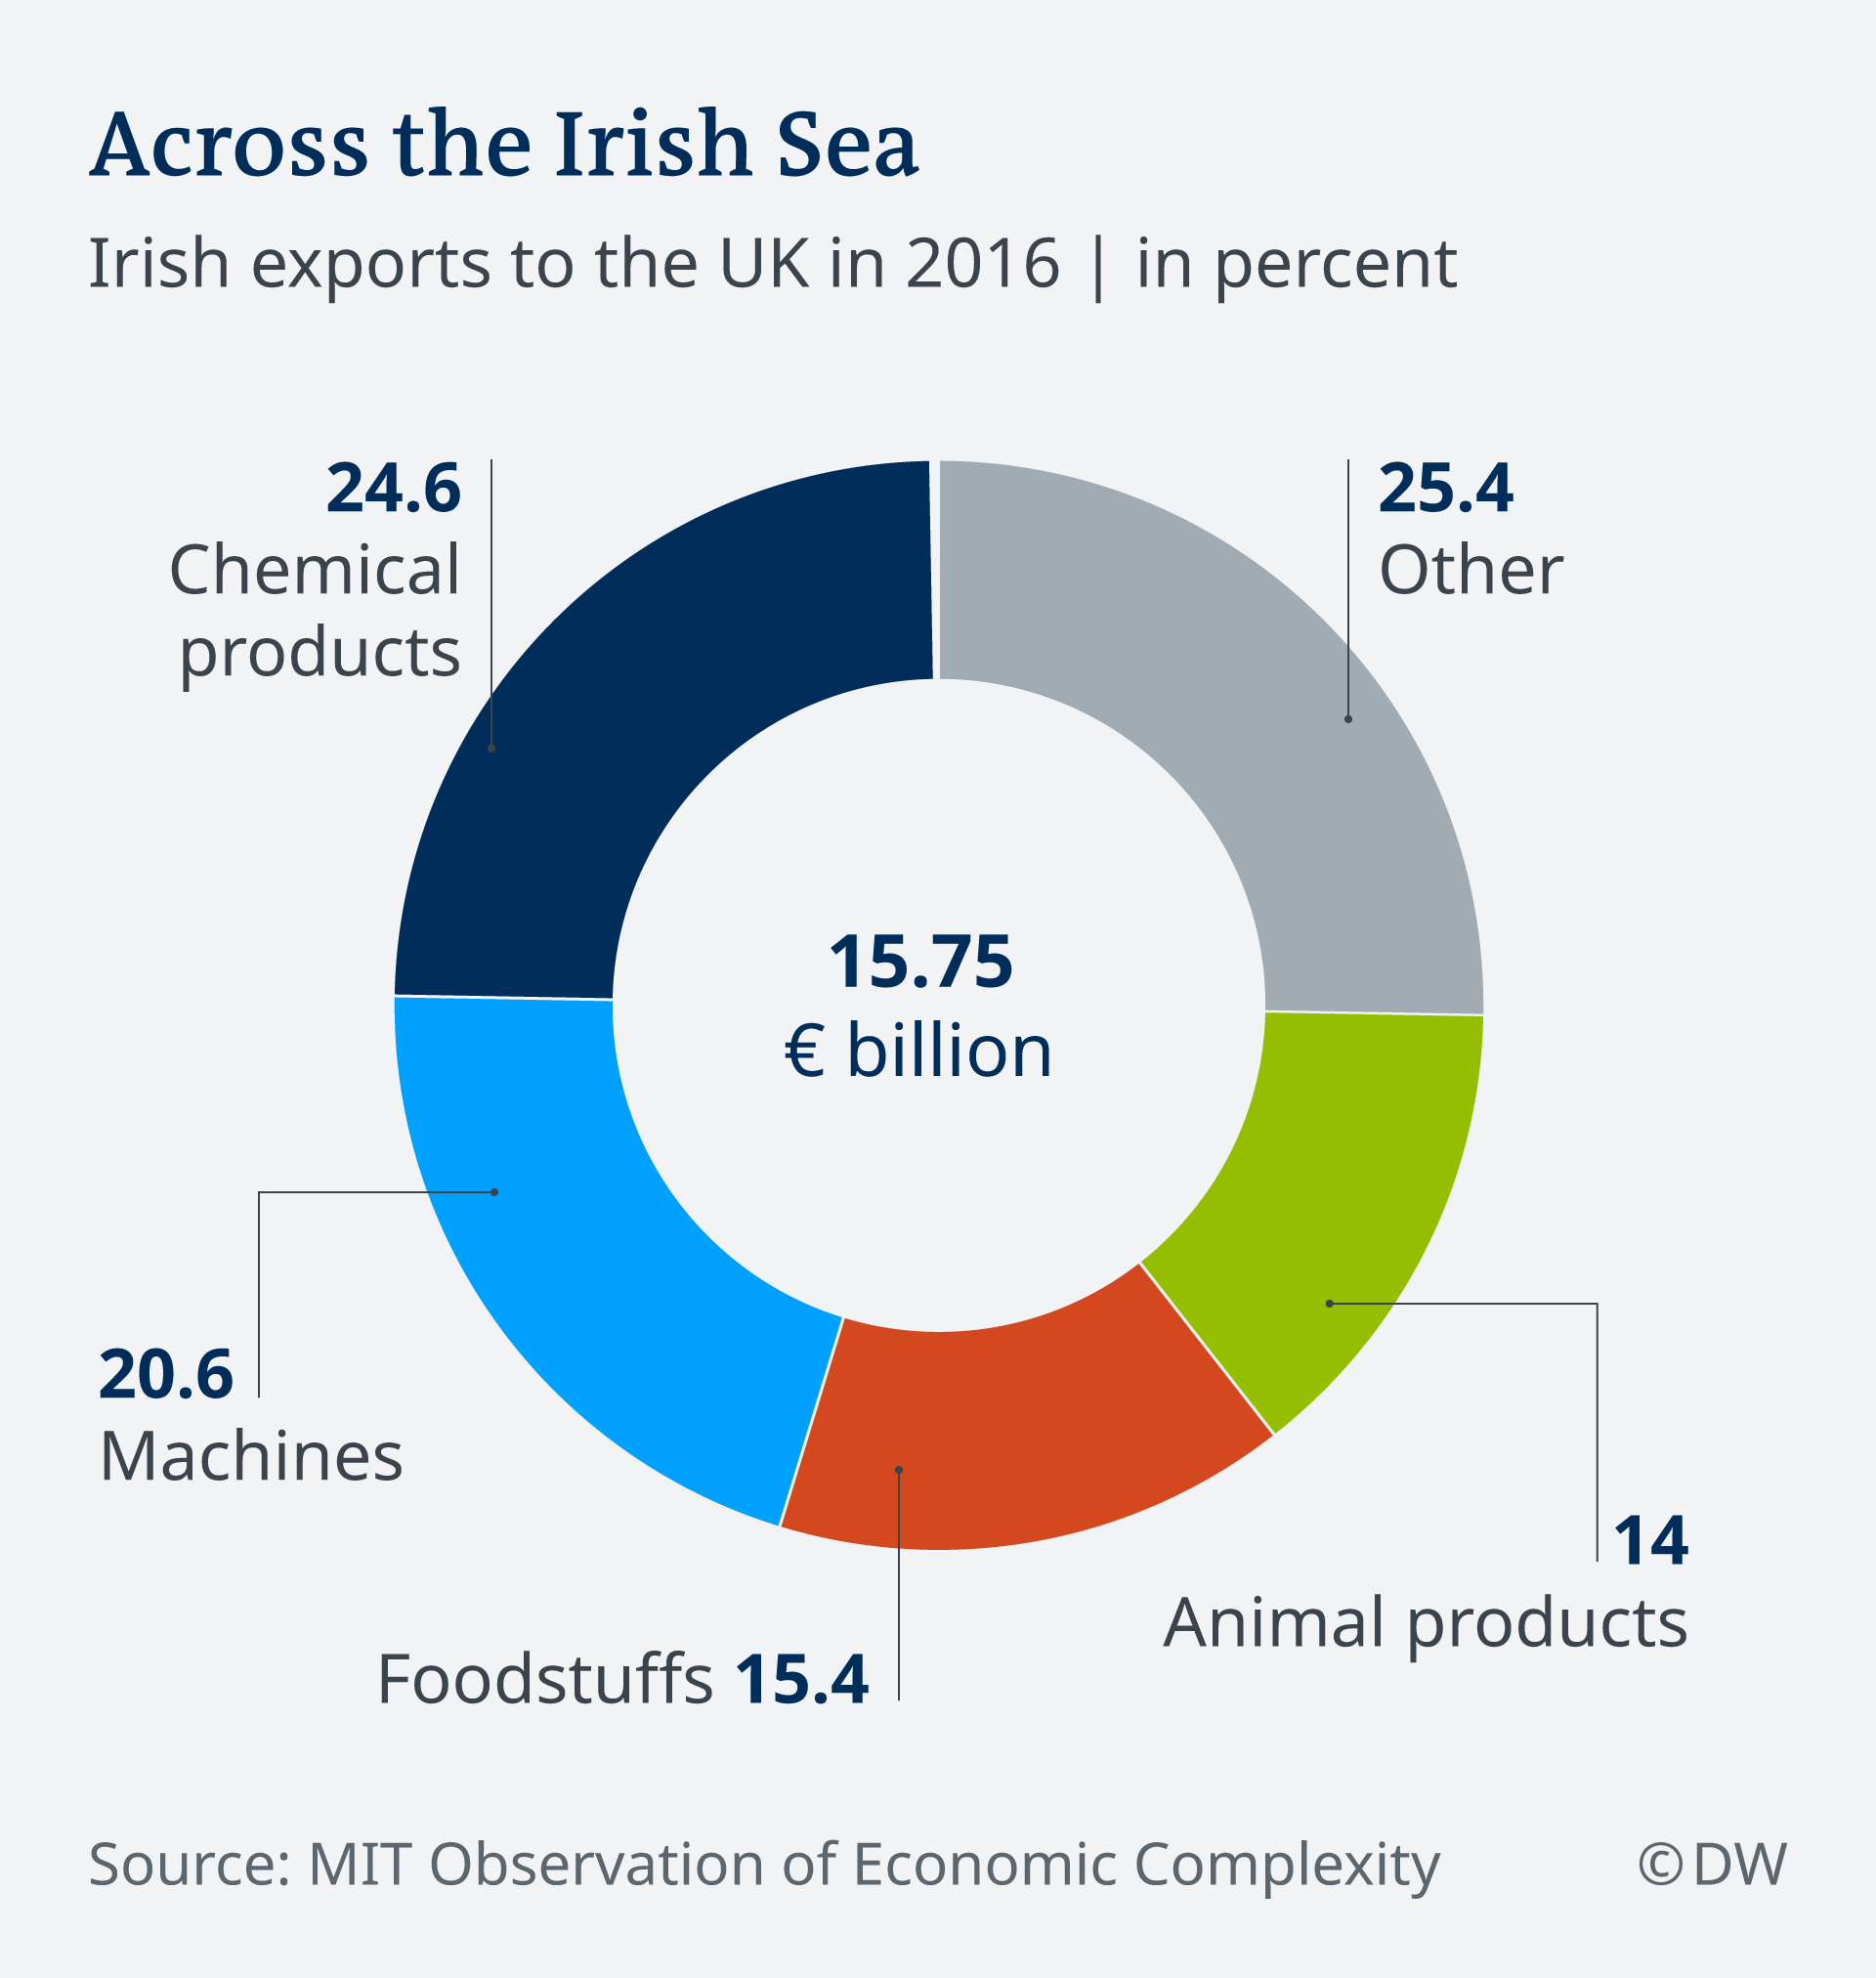 Irish exports to the UK in 2016